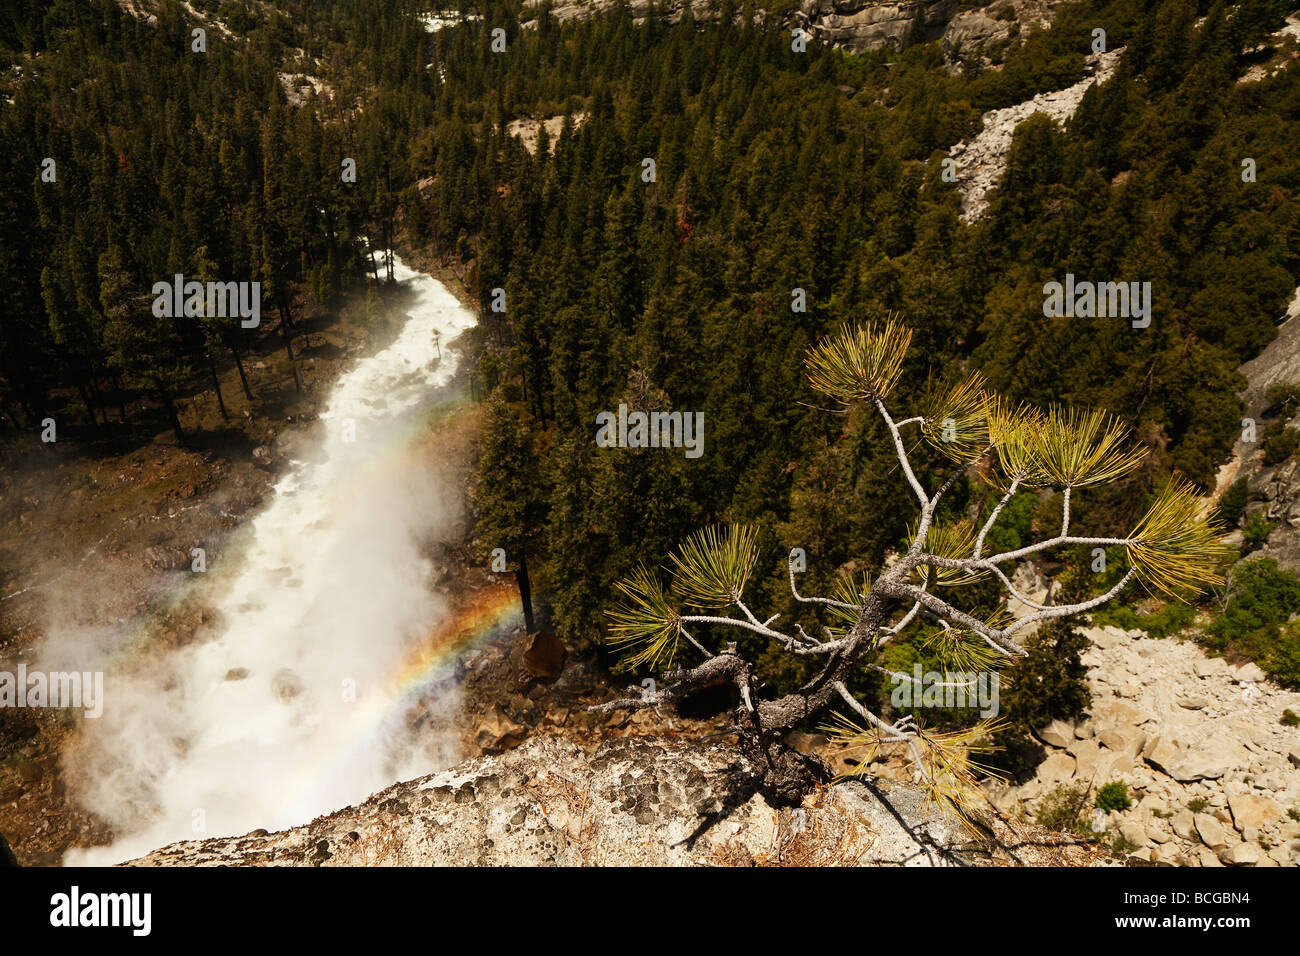 Pine sapling Yosemite river with rainbows - Stock Image